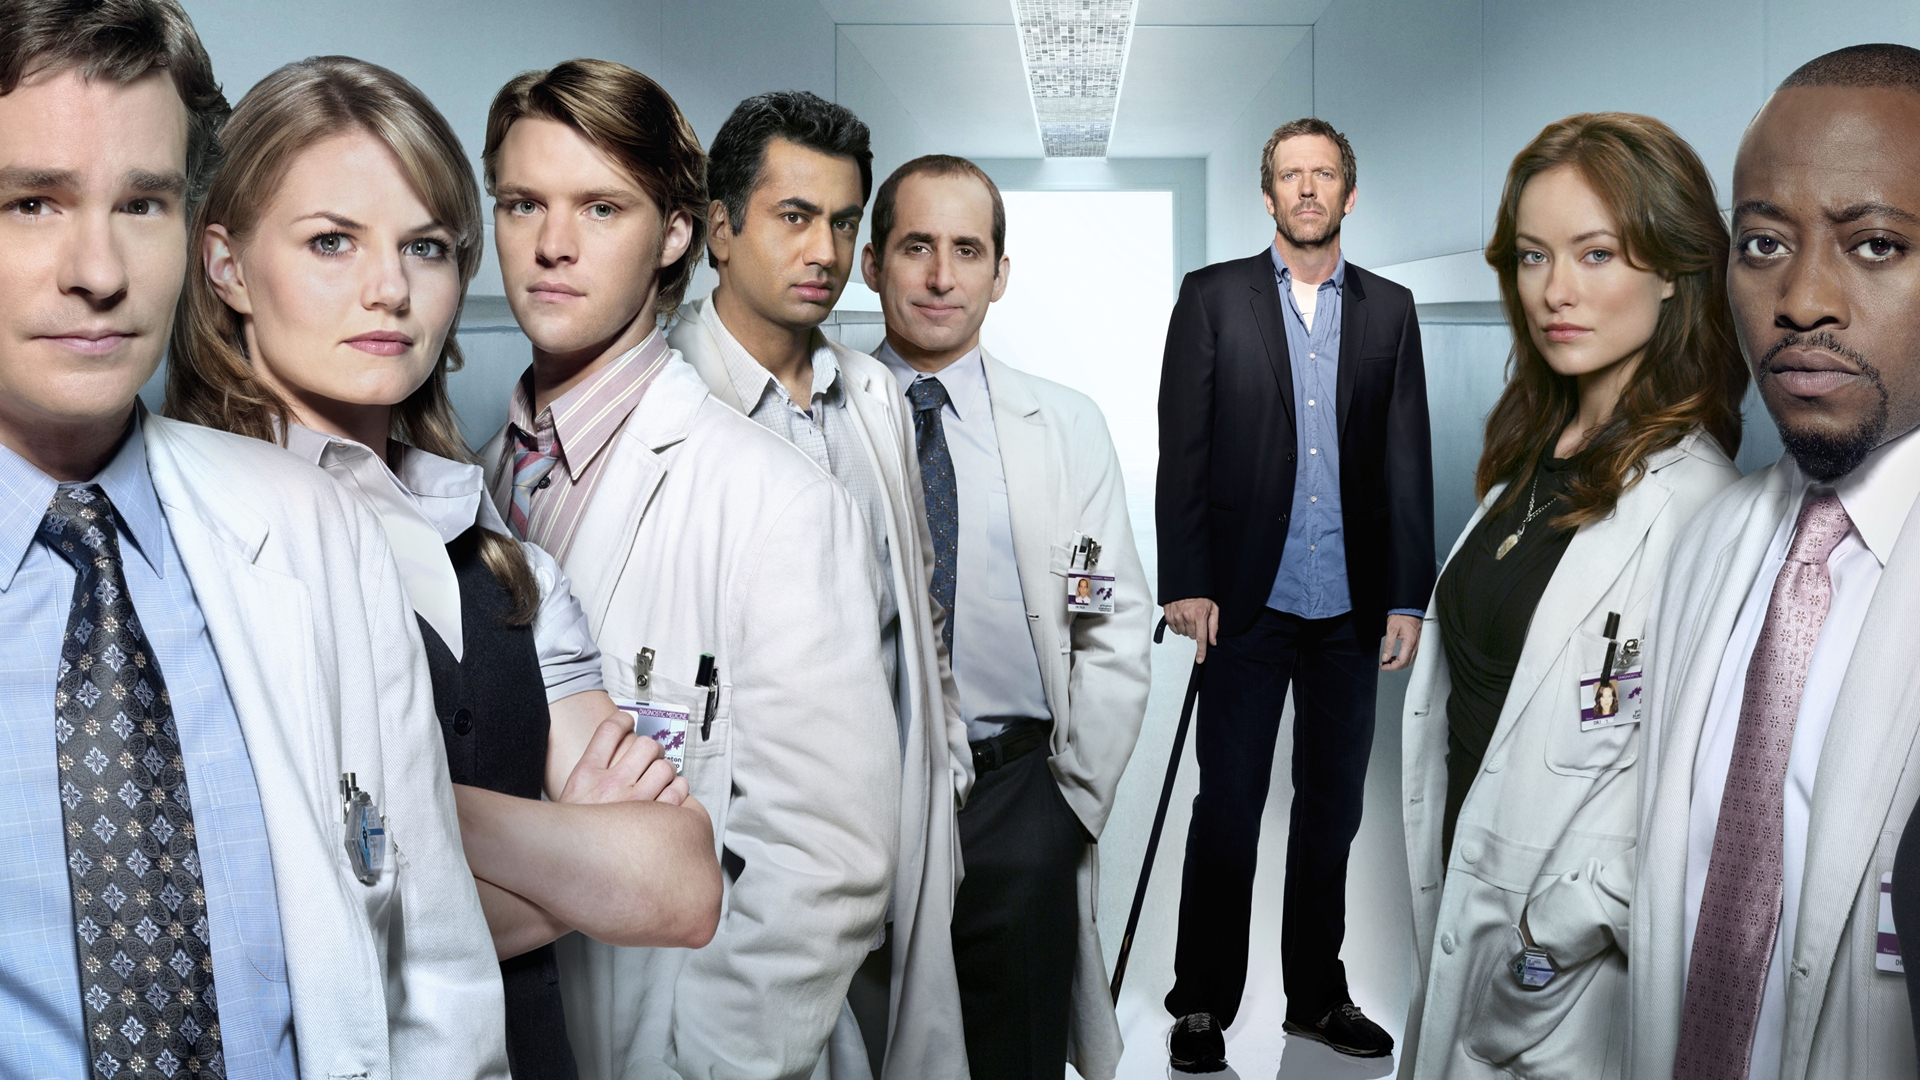 Doctors and manager